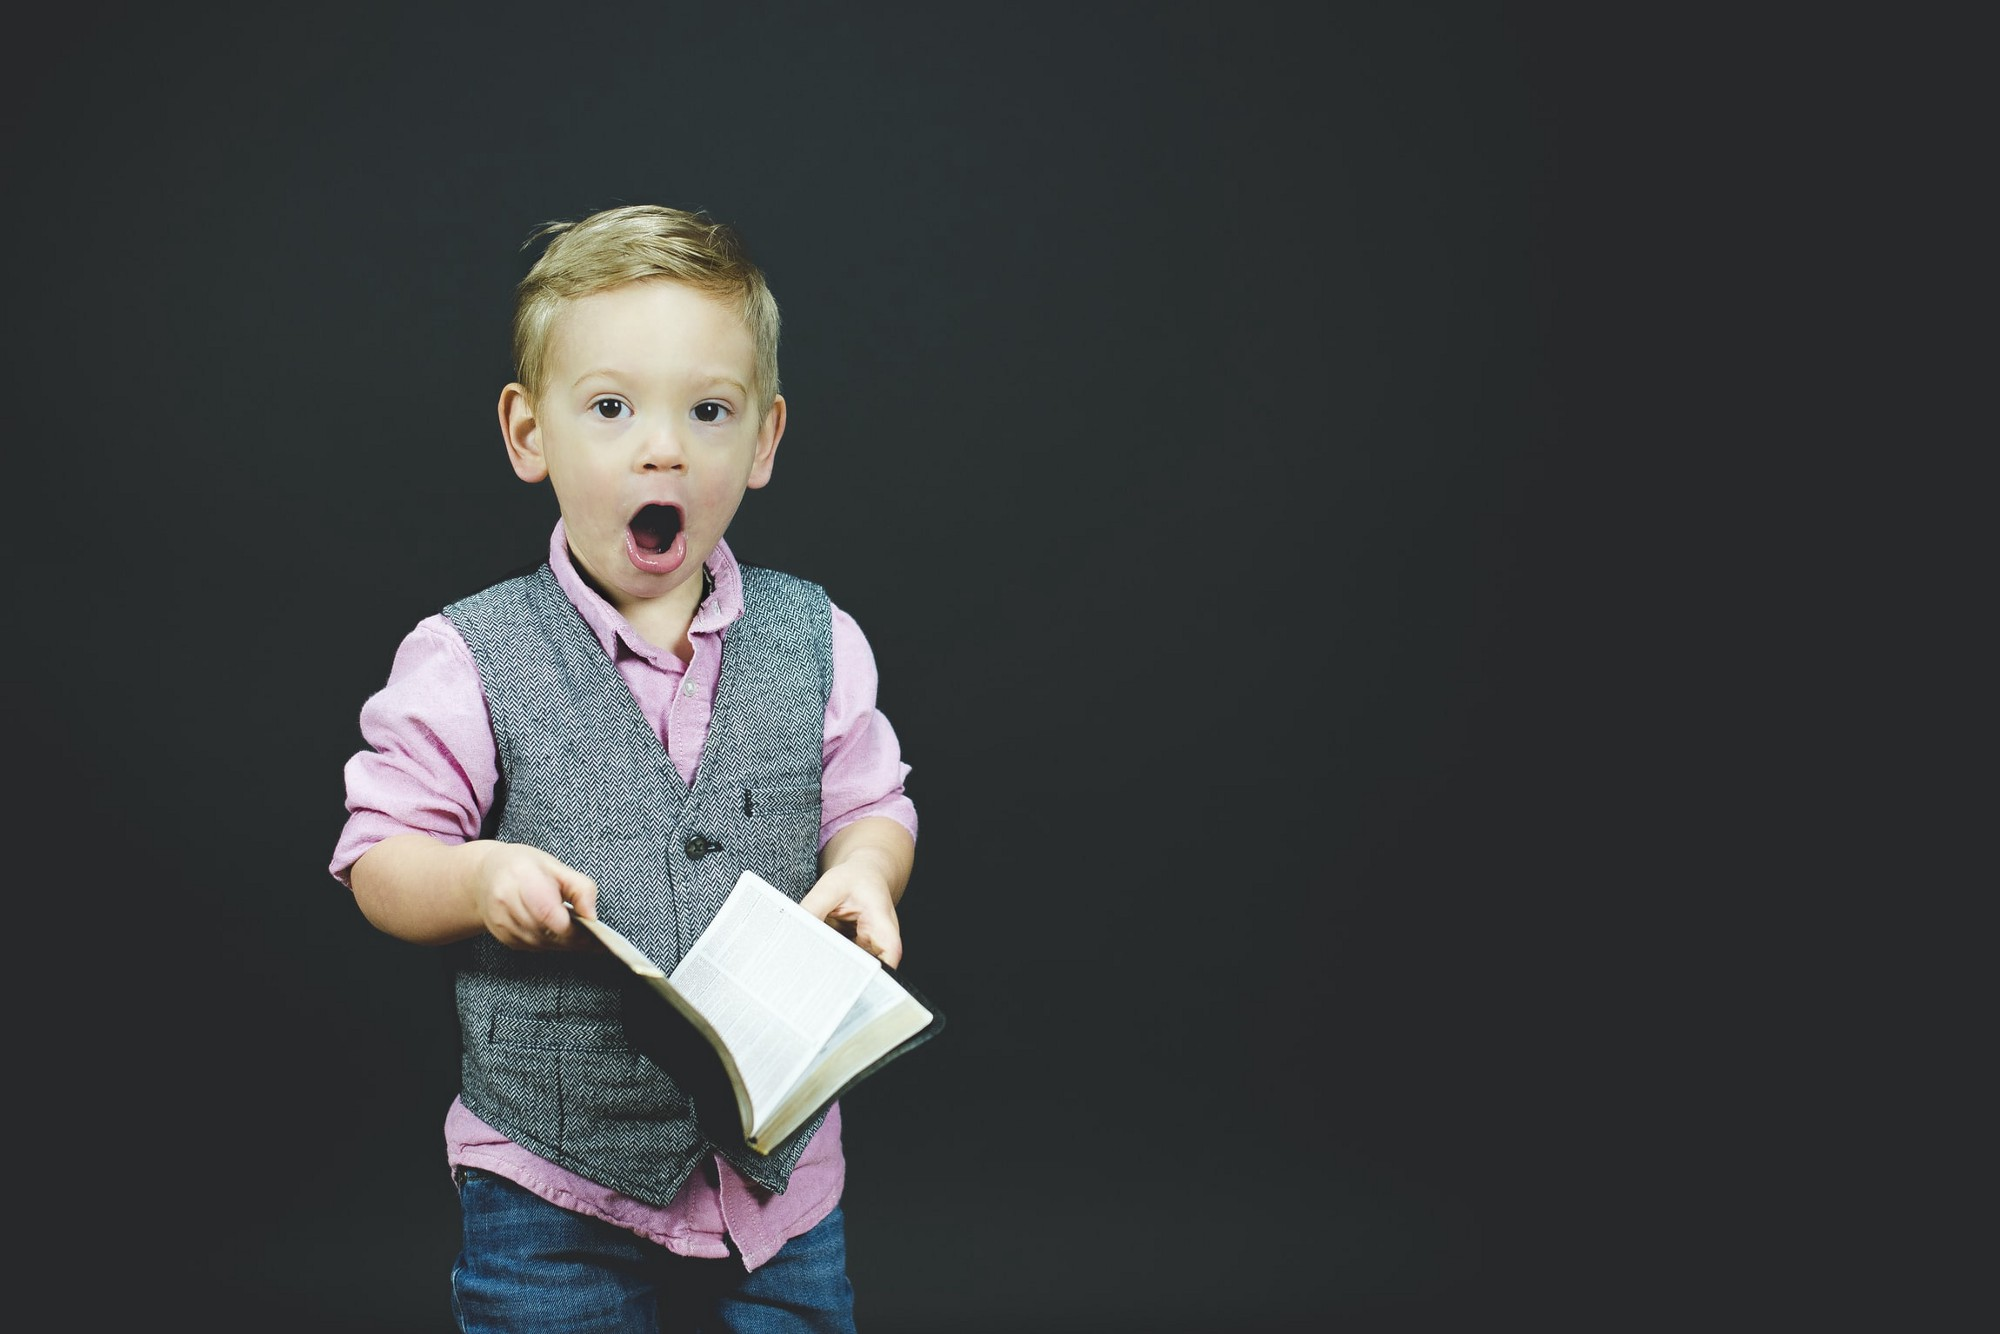 Boy with his mouth open while holding a book.